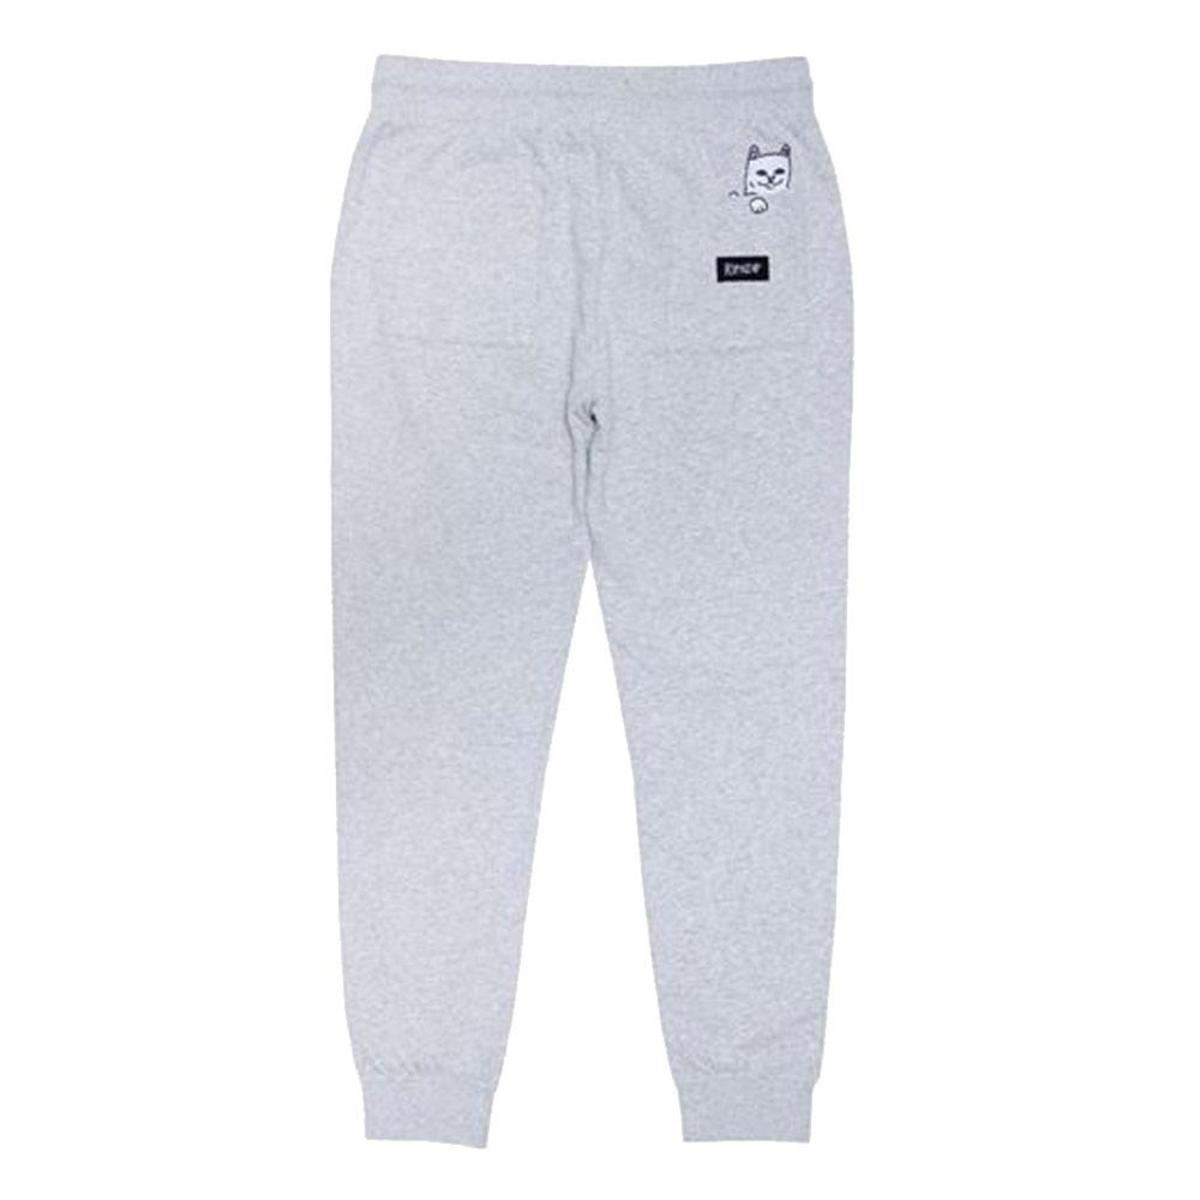 SWEATPANTS PEEKING NERM (Heather Grey)